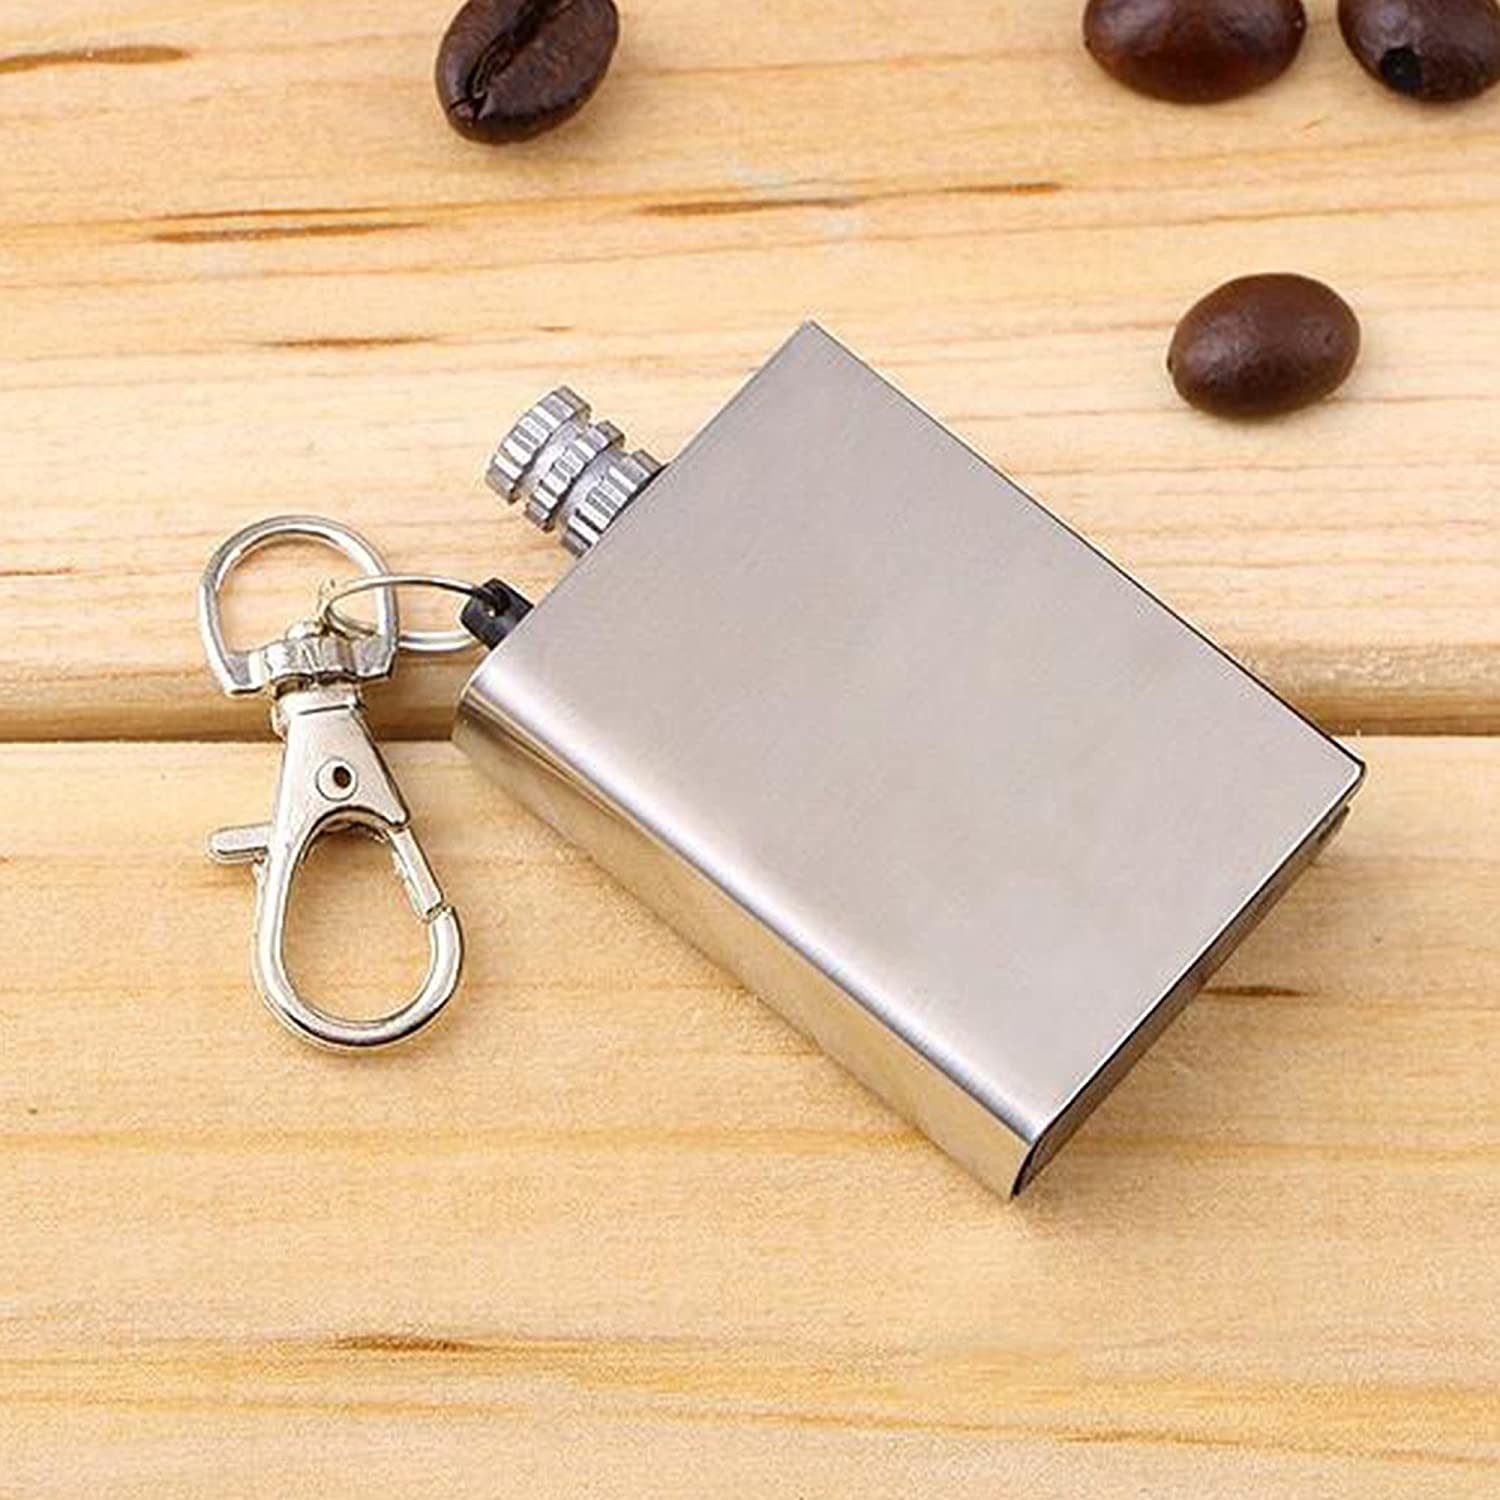 Ferro Rod Flint Match K EXCLUSIVE Waterproof Permanent Match Survival Lighter Keychain Thousands of Strikes Stainless Steel Case